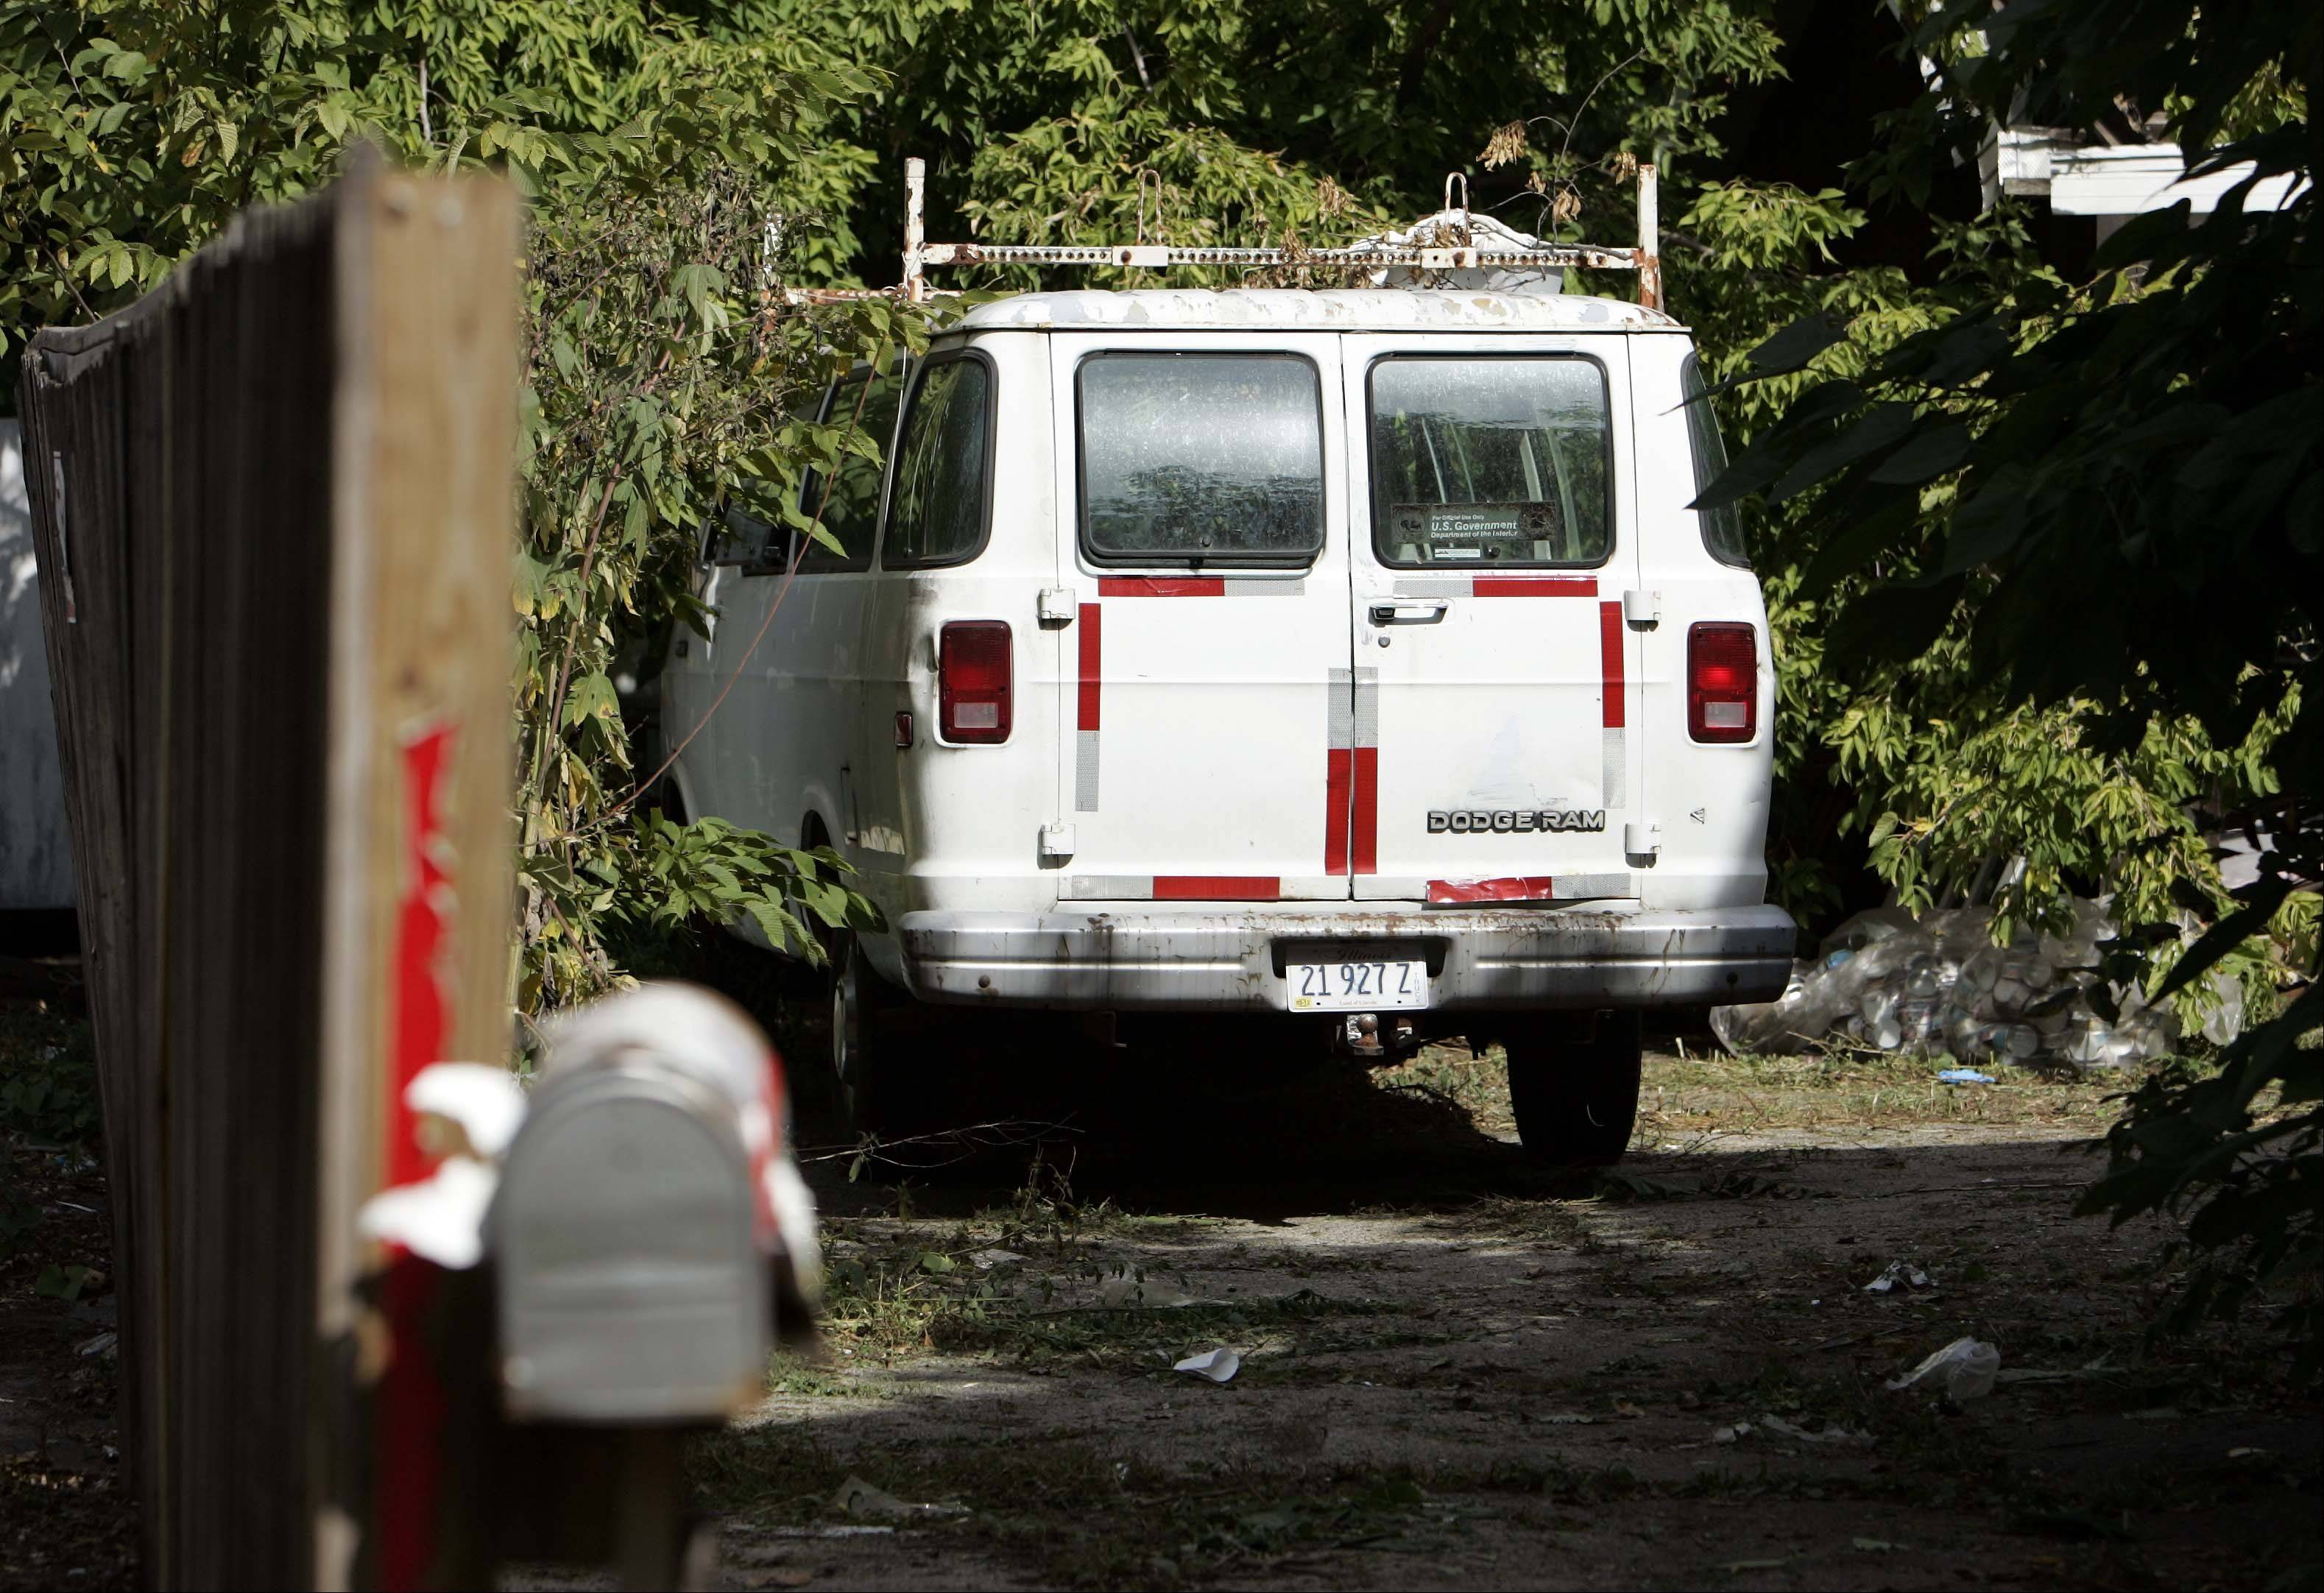 Elgin police say they found 43 dead and decaying animals in this van parked outside a home in the 200 block of Villa Street. William Tinkler, 60, who lives there, later arrested on related animal cruelty charges.